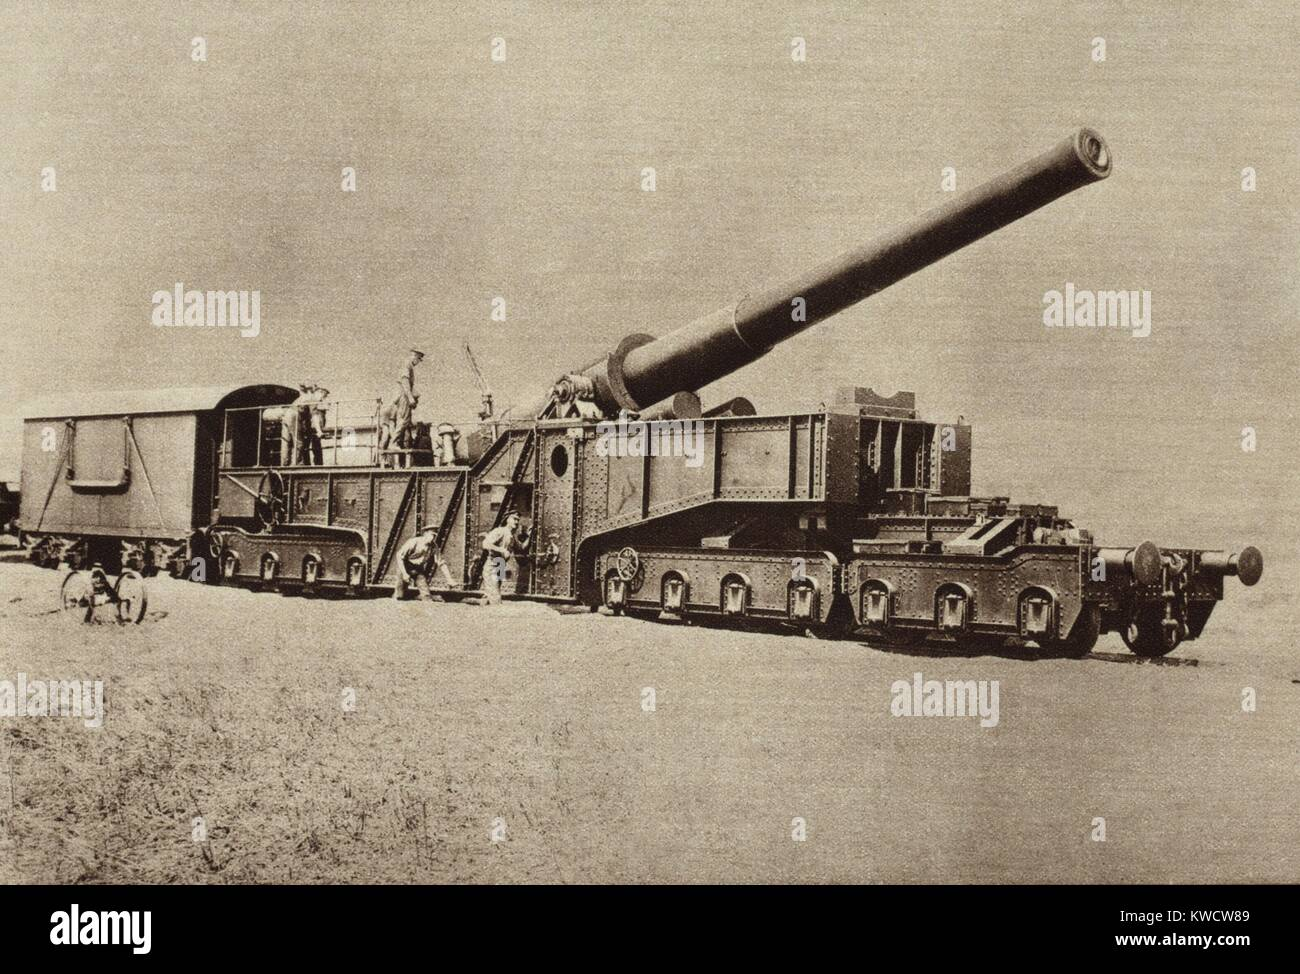 World War 1. Artillery in use by American forces in Argonne. The great guns manned the American Coast Artillery, - Stock Image